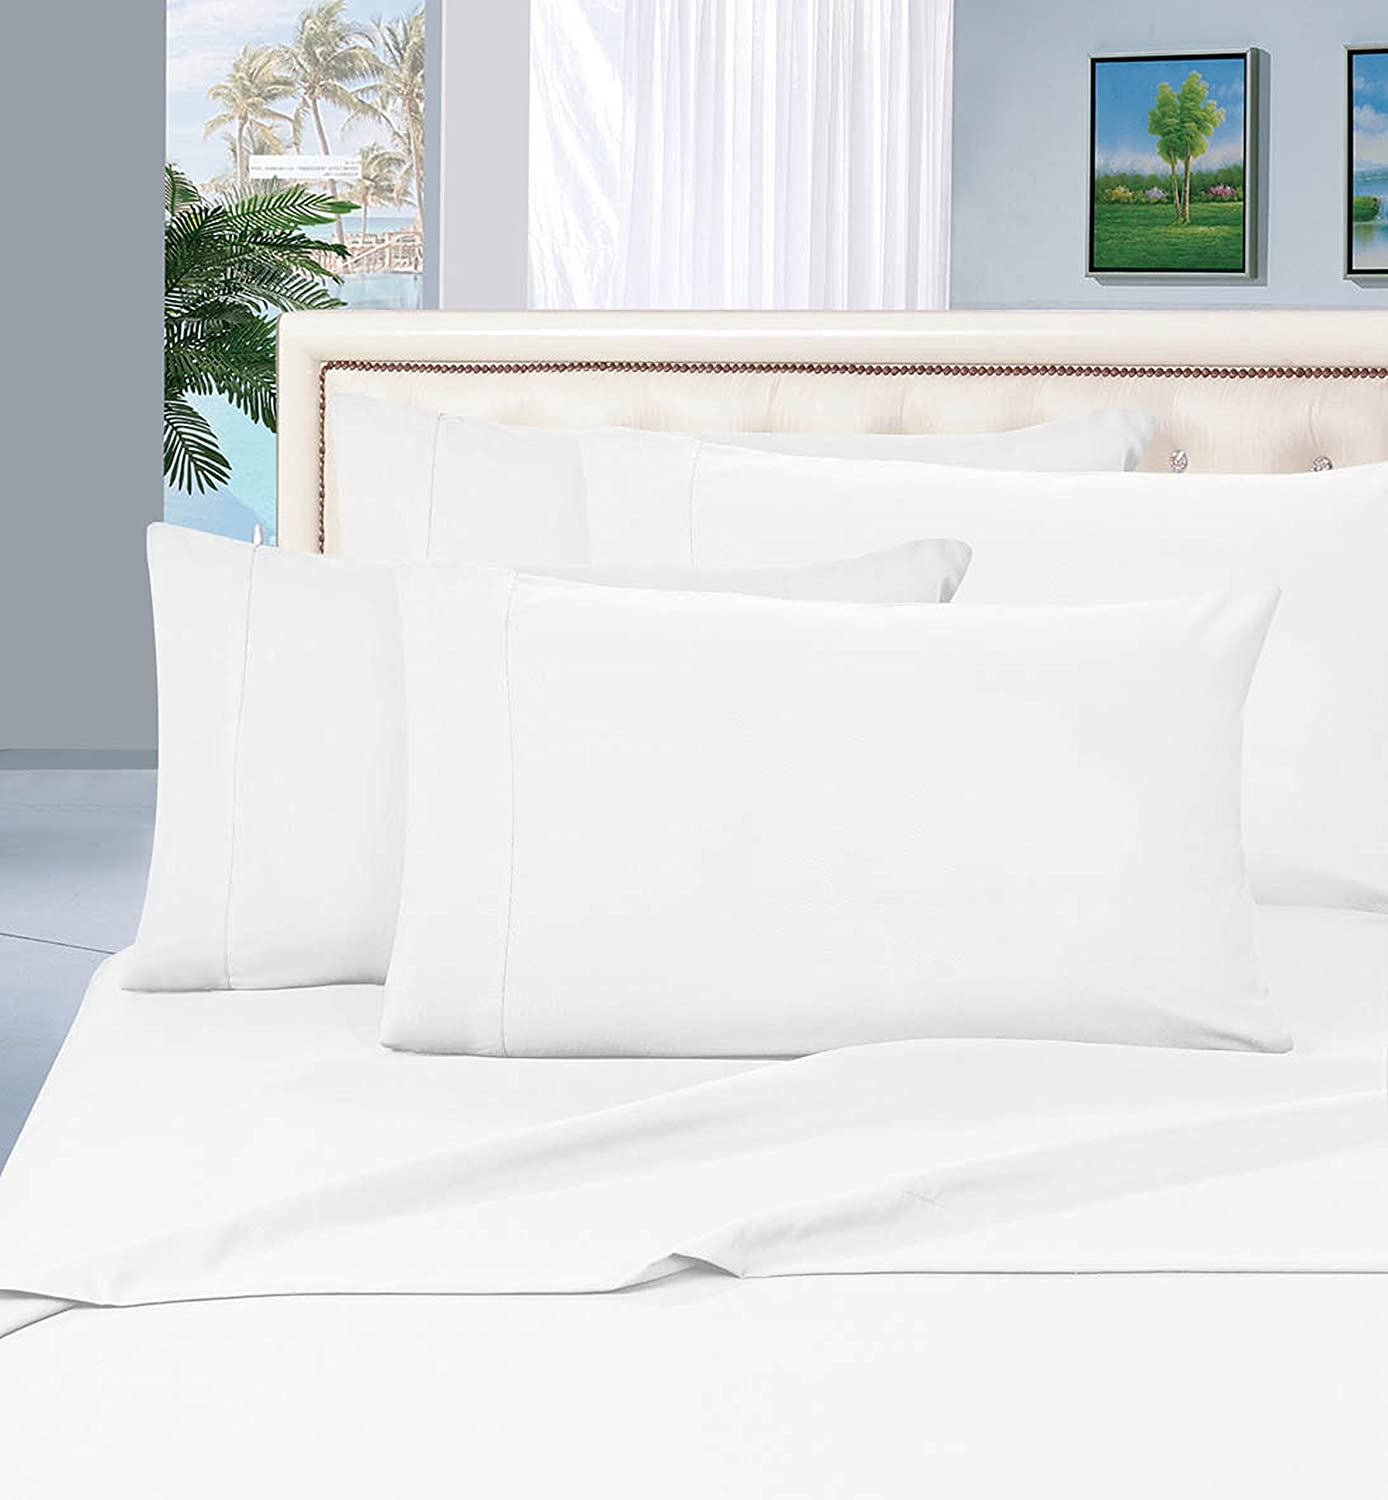 Elegant Comfort 2 Piece Luxurious Silky-Soft Pillowcases, King, White 110RW-PCASE-King White